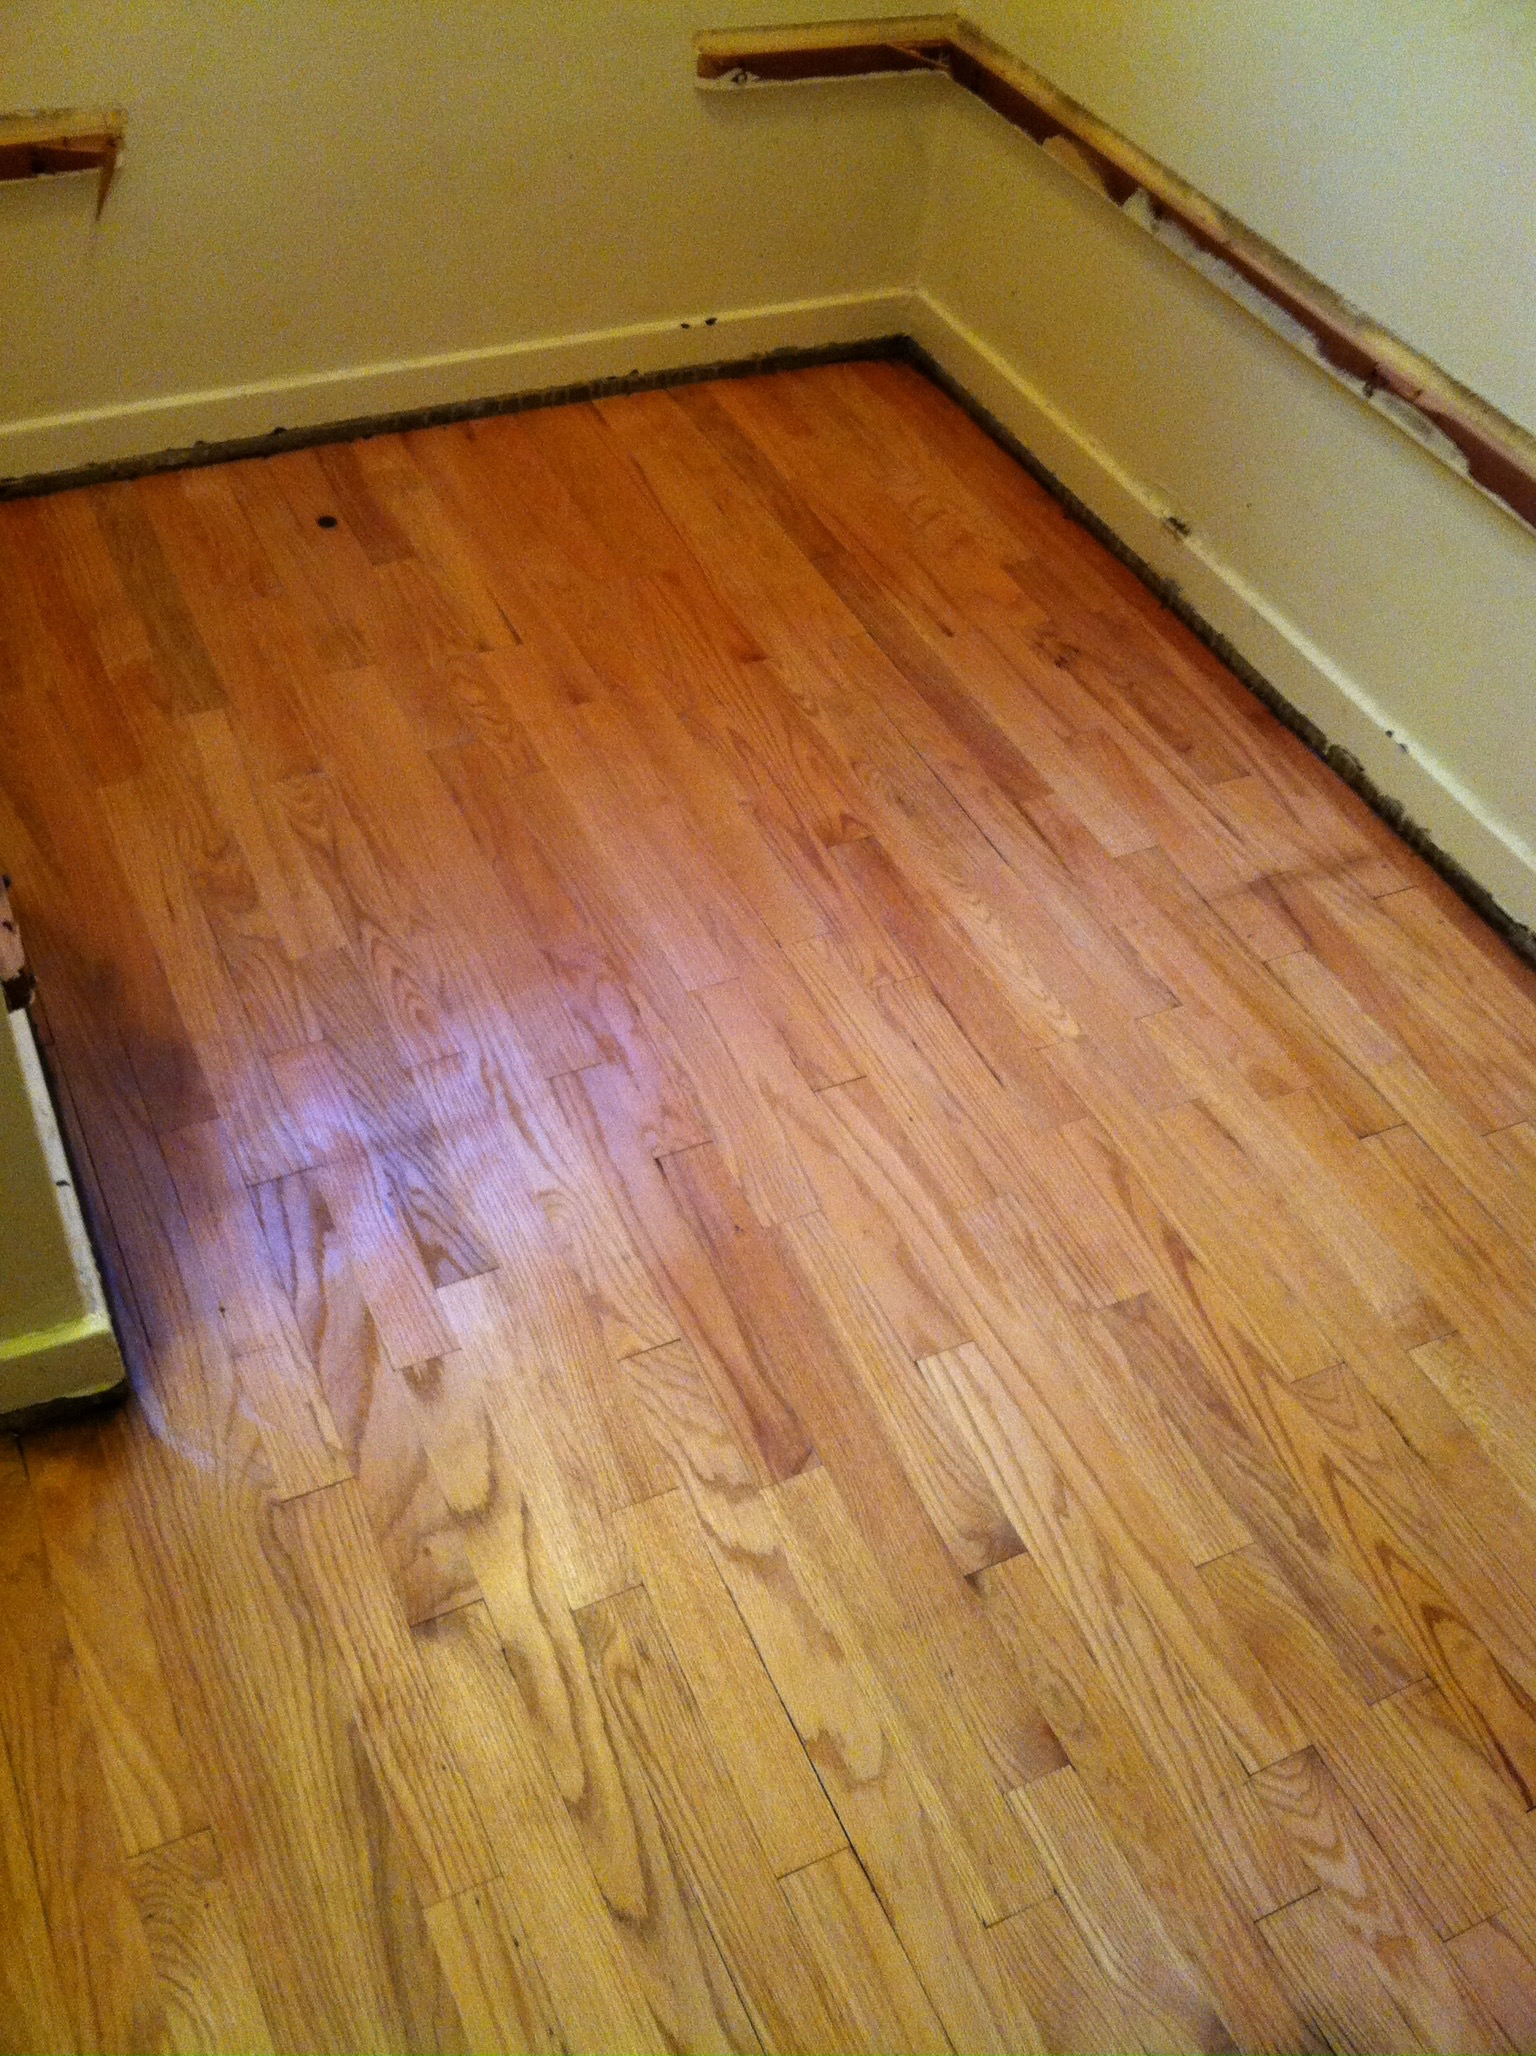 Great group of guys. Re-finished my damaged wood floors and made them looking new again. My floors look fantastic. They were on schedule and got the job done on time as planned. I would recommend them. I absolutely plan on using them again.    JULIUS Lema